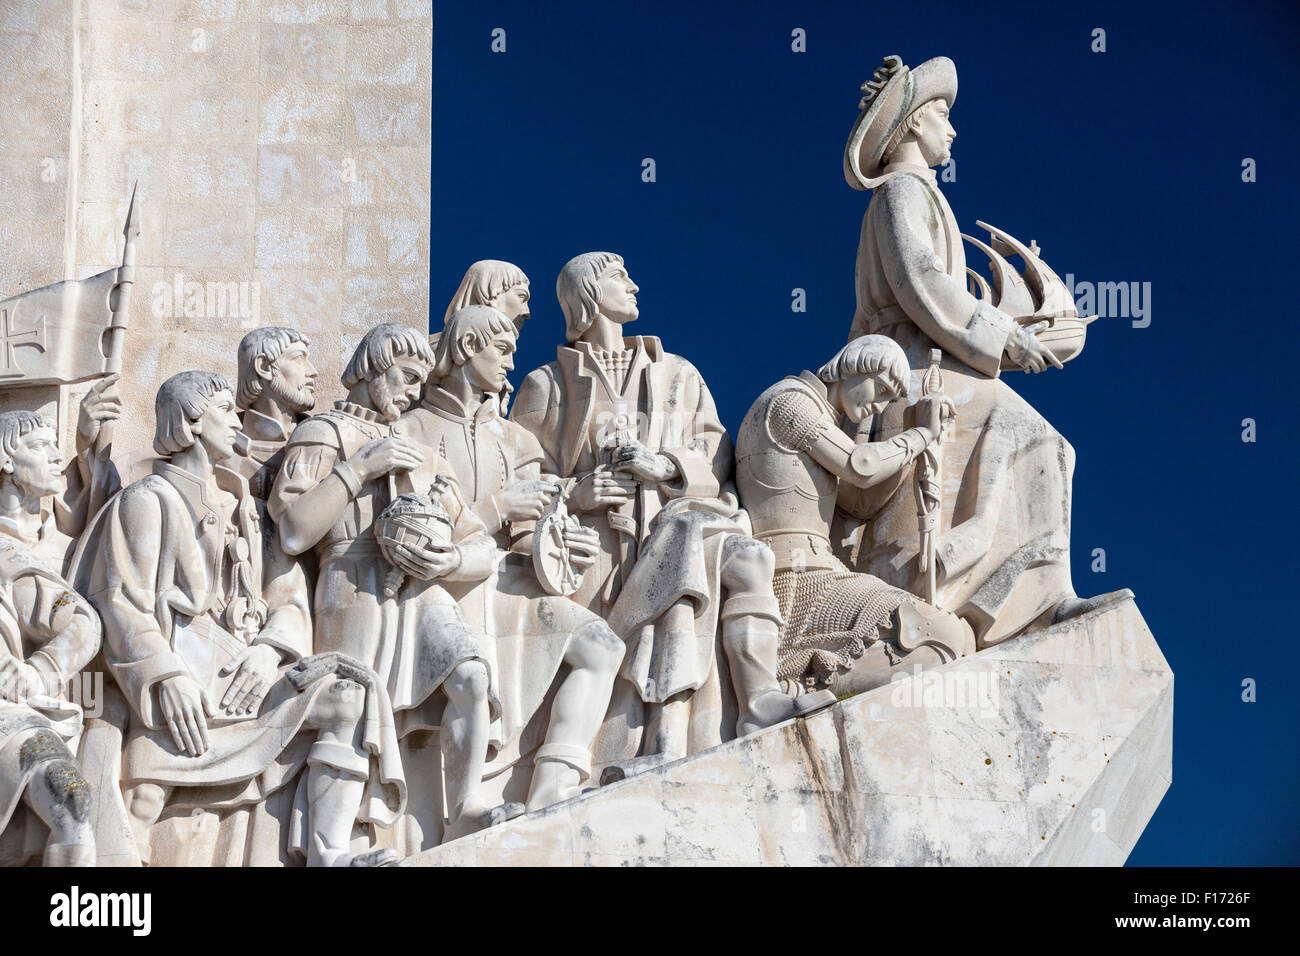 Detail of Monument to the Discoveries along the Tagus river in the Belem section of Lisbon, Portugal. - Stock Image